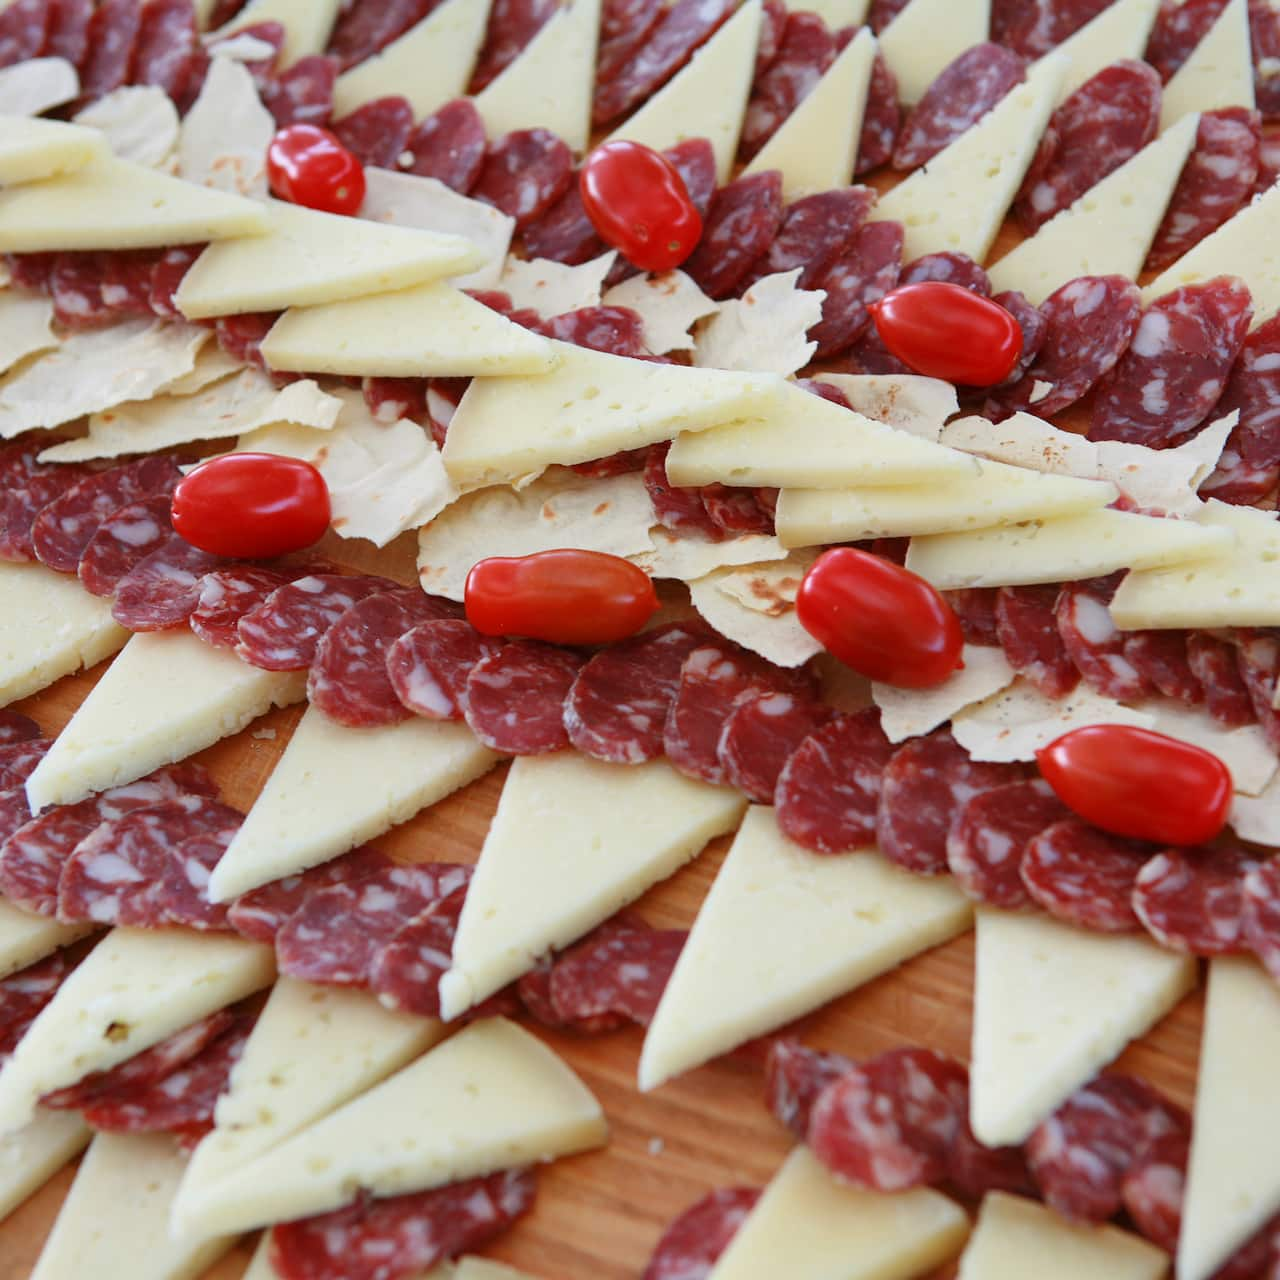 A display of meats, tomatoes and triangle-shaped cheese